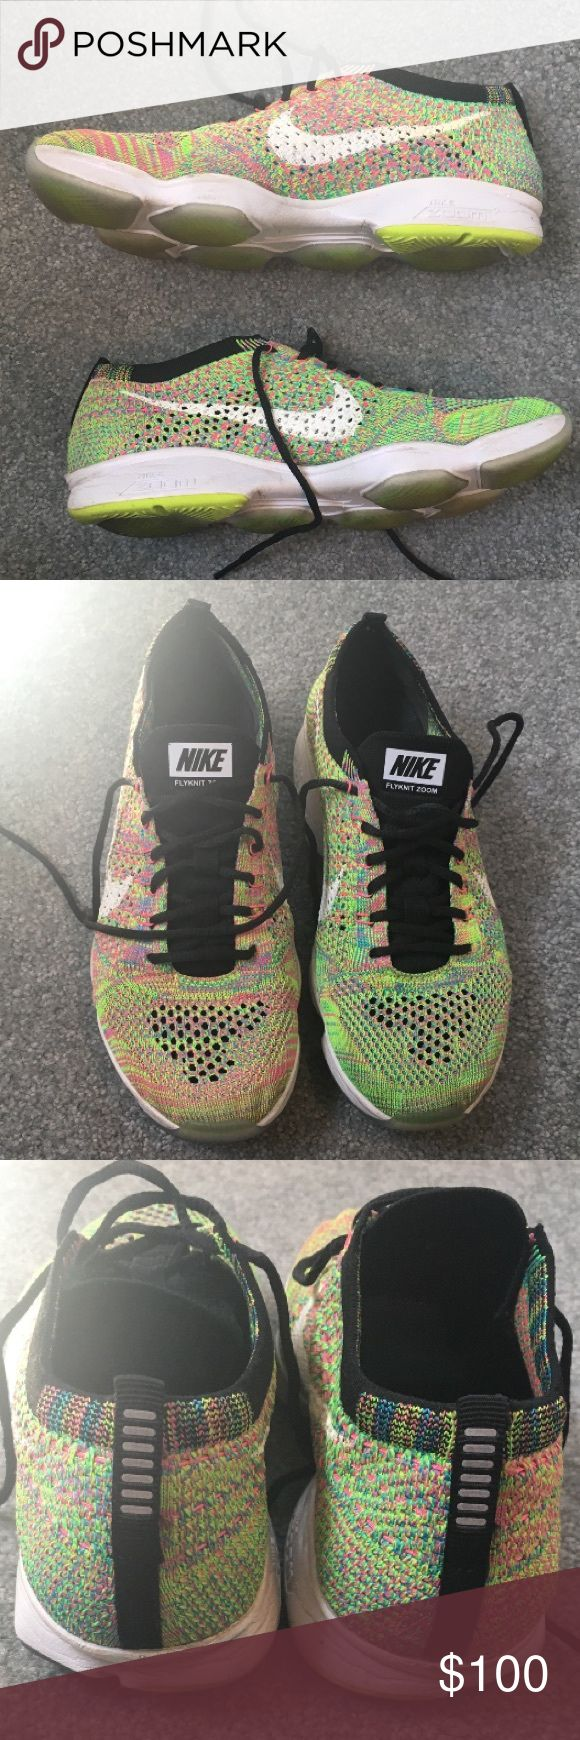 Nike Women's Flyknit Zoom Agility Worn a few times, in good condition. Multicolor colorway, super popular and hard to find. Nike Shoes Athletic Shoes